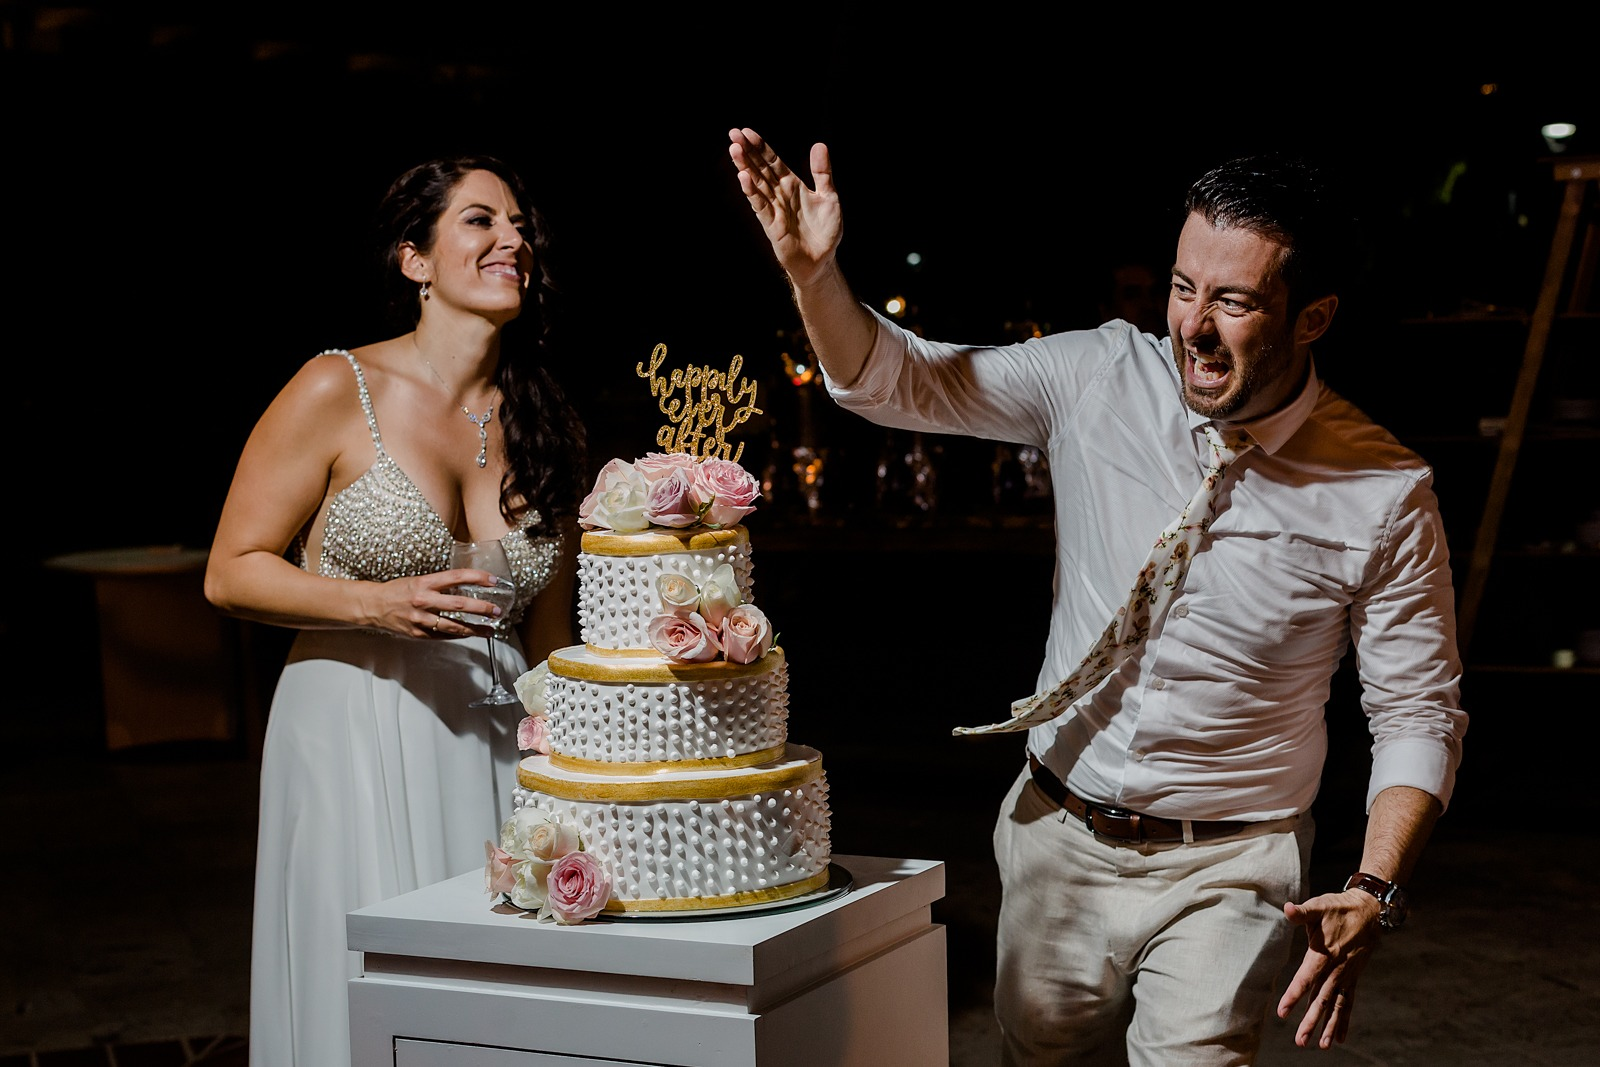 wedding-party-cake-bride-groom-fun-smile-moment-vallarta-cut the cake